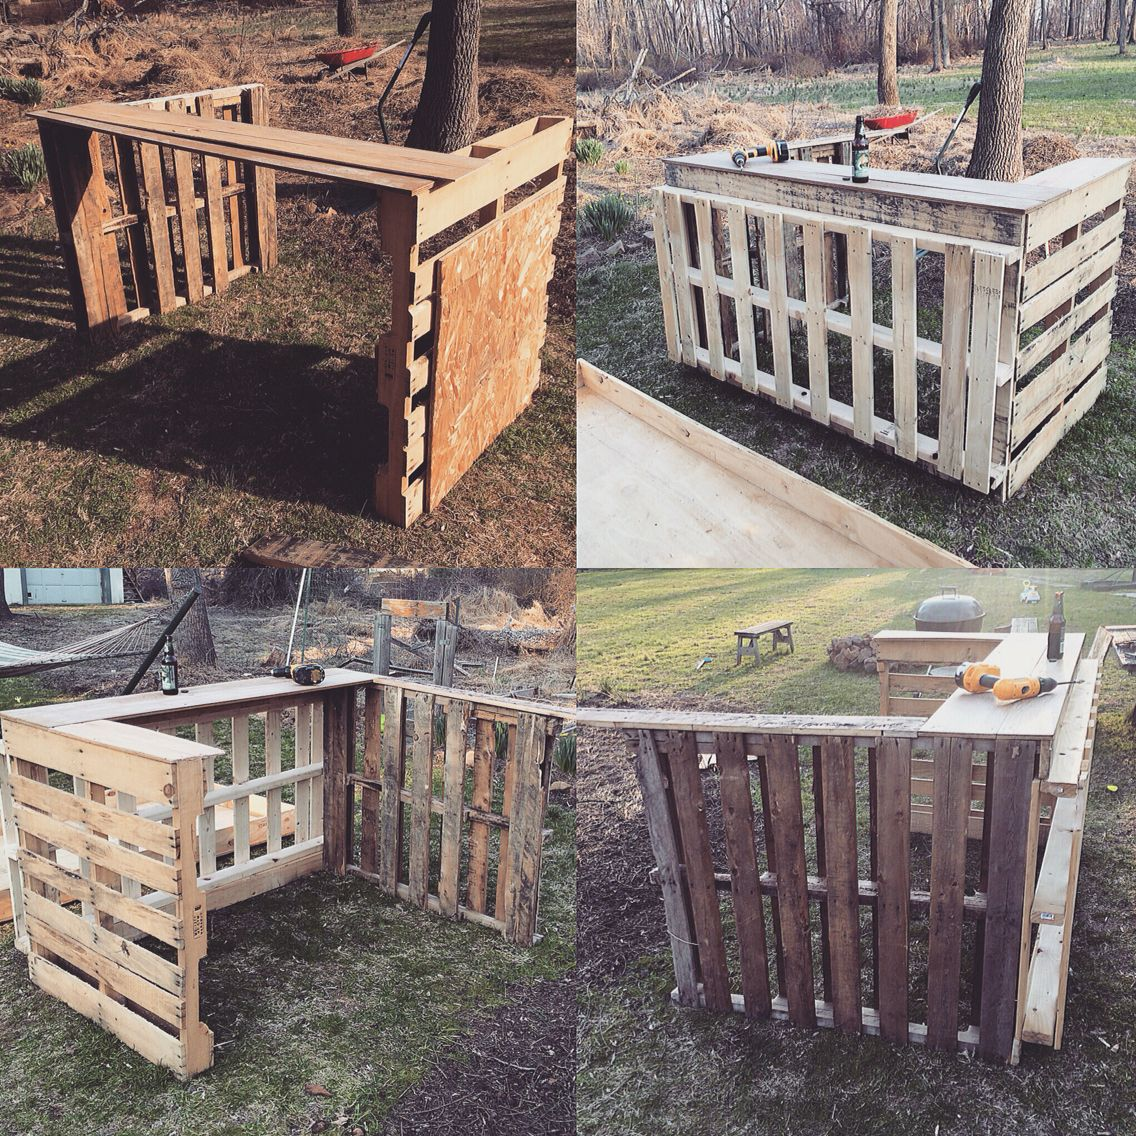 DIY Project Building My Tiki Bar From Pallets, So Far So